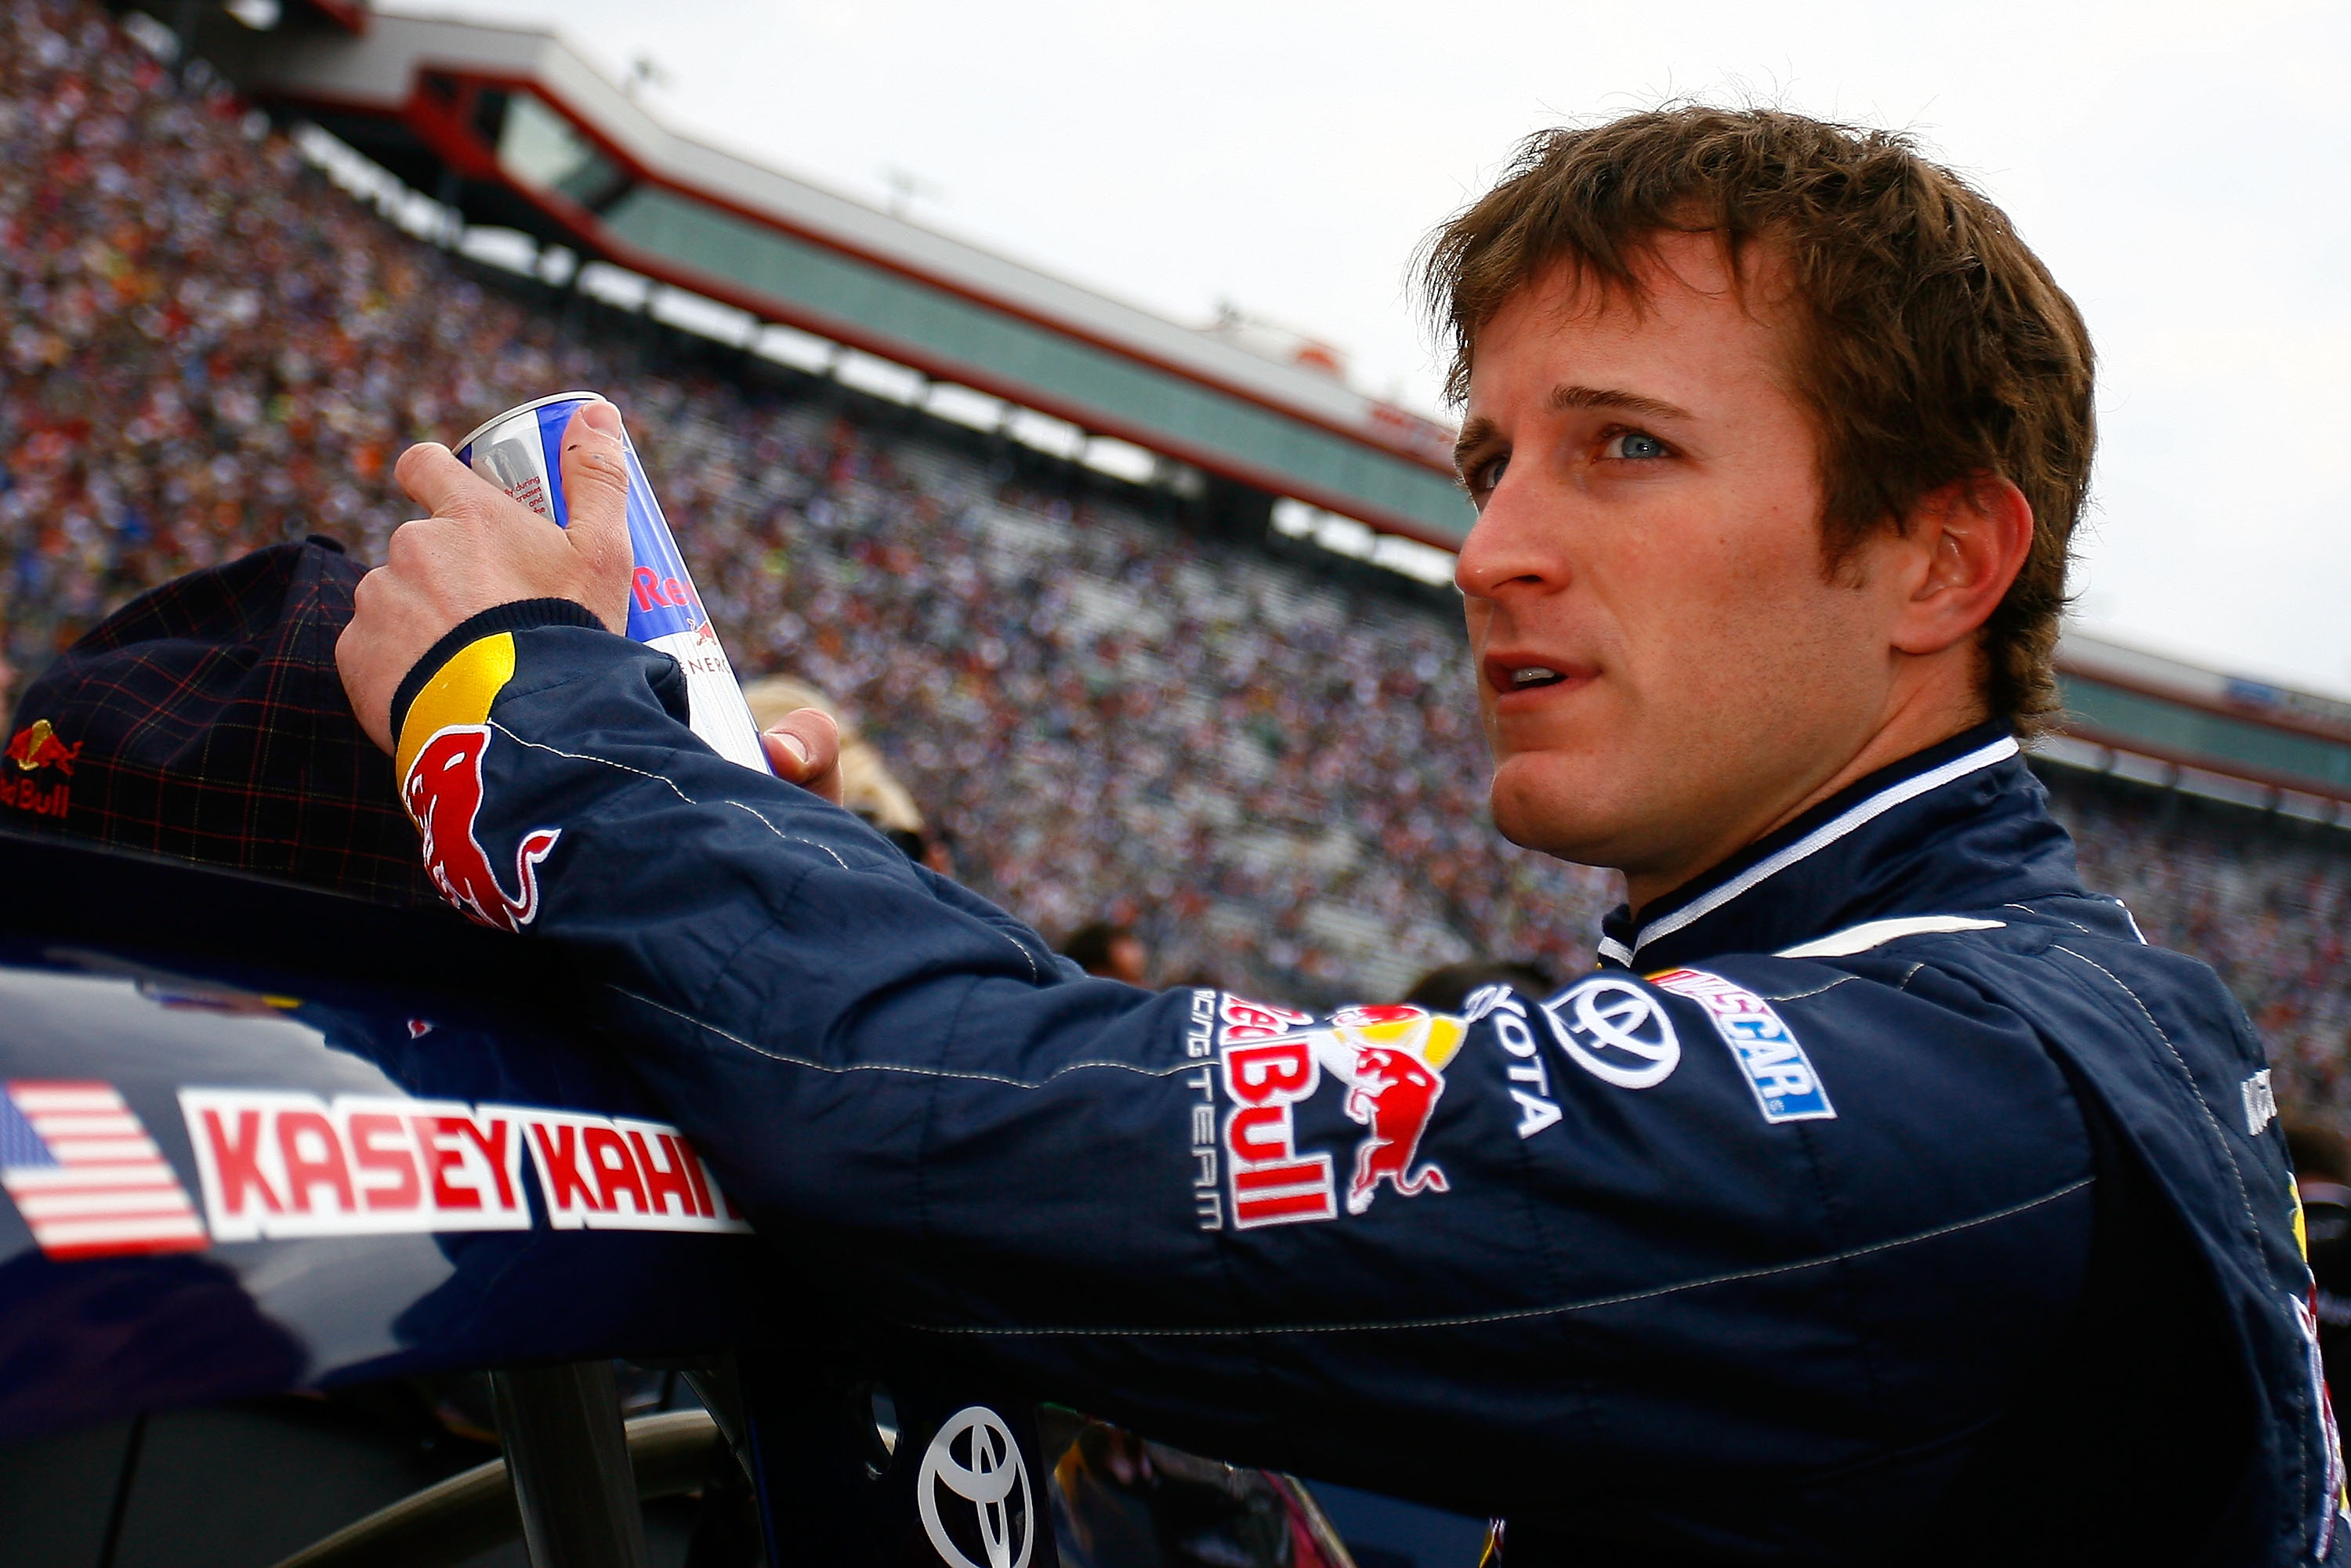 BRISTOL, TN - MARCH 20:  Kasey Kahne, driver of the #4 Red Bull Toyota, stands on the grid prior to the NASCAR Sprint Cup Series Jeff Byrd 500 Presented By Food City at Bristol Motor Speedway on March 20, 2011 in Bristol, Tennessee.  (Photo by Jason Smith